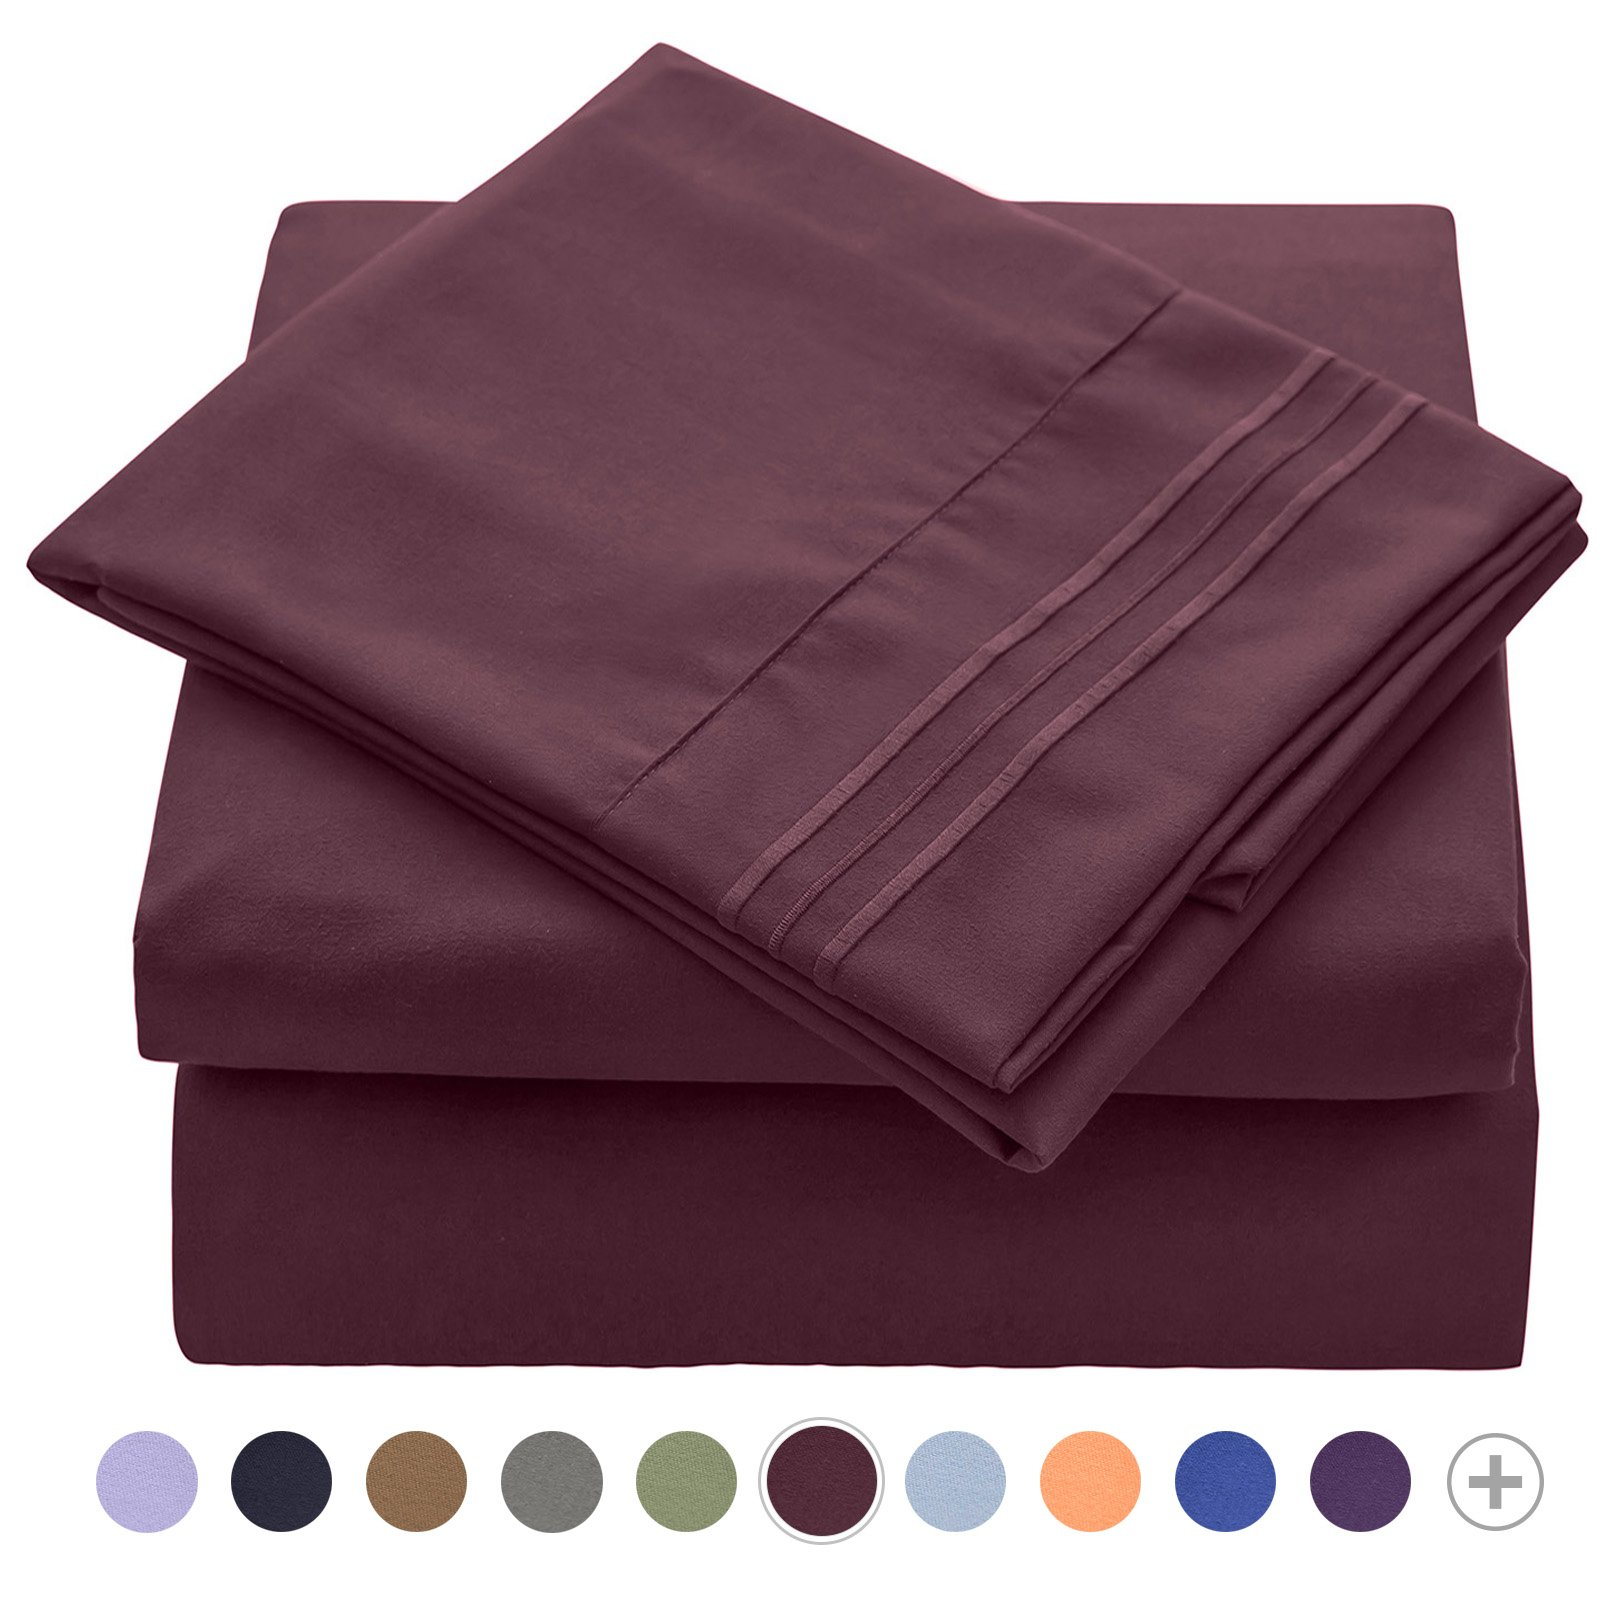 VEEYOO Bed Sheet Set Queen - 1800 Thread Count Microfiber Queen Size Sheet Sets - Wrinkle, Stain, Fade Resistant Hypoallergenic Pillowcase Sheet Set with Deep Pocket, Luxury Hotel Bedding Set Burgundy